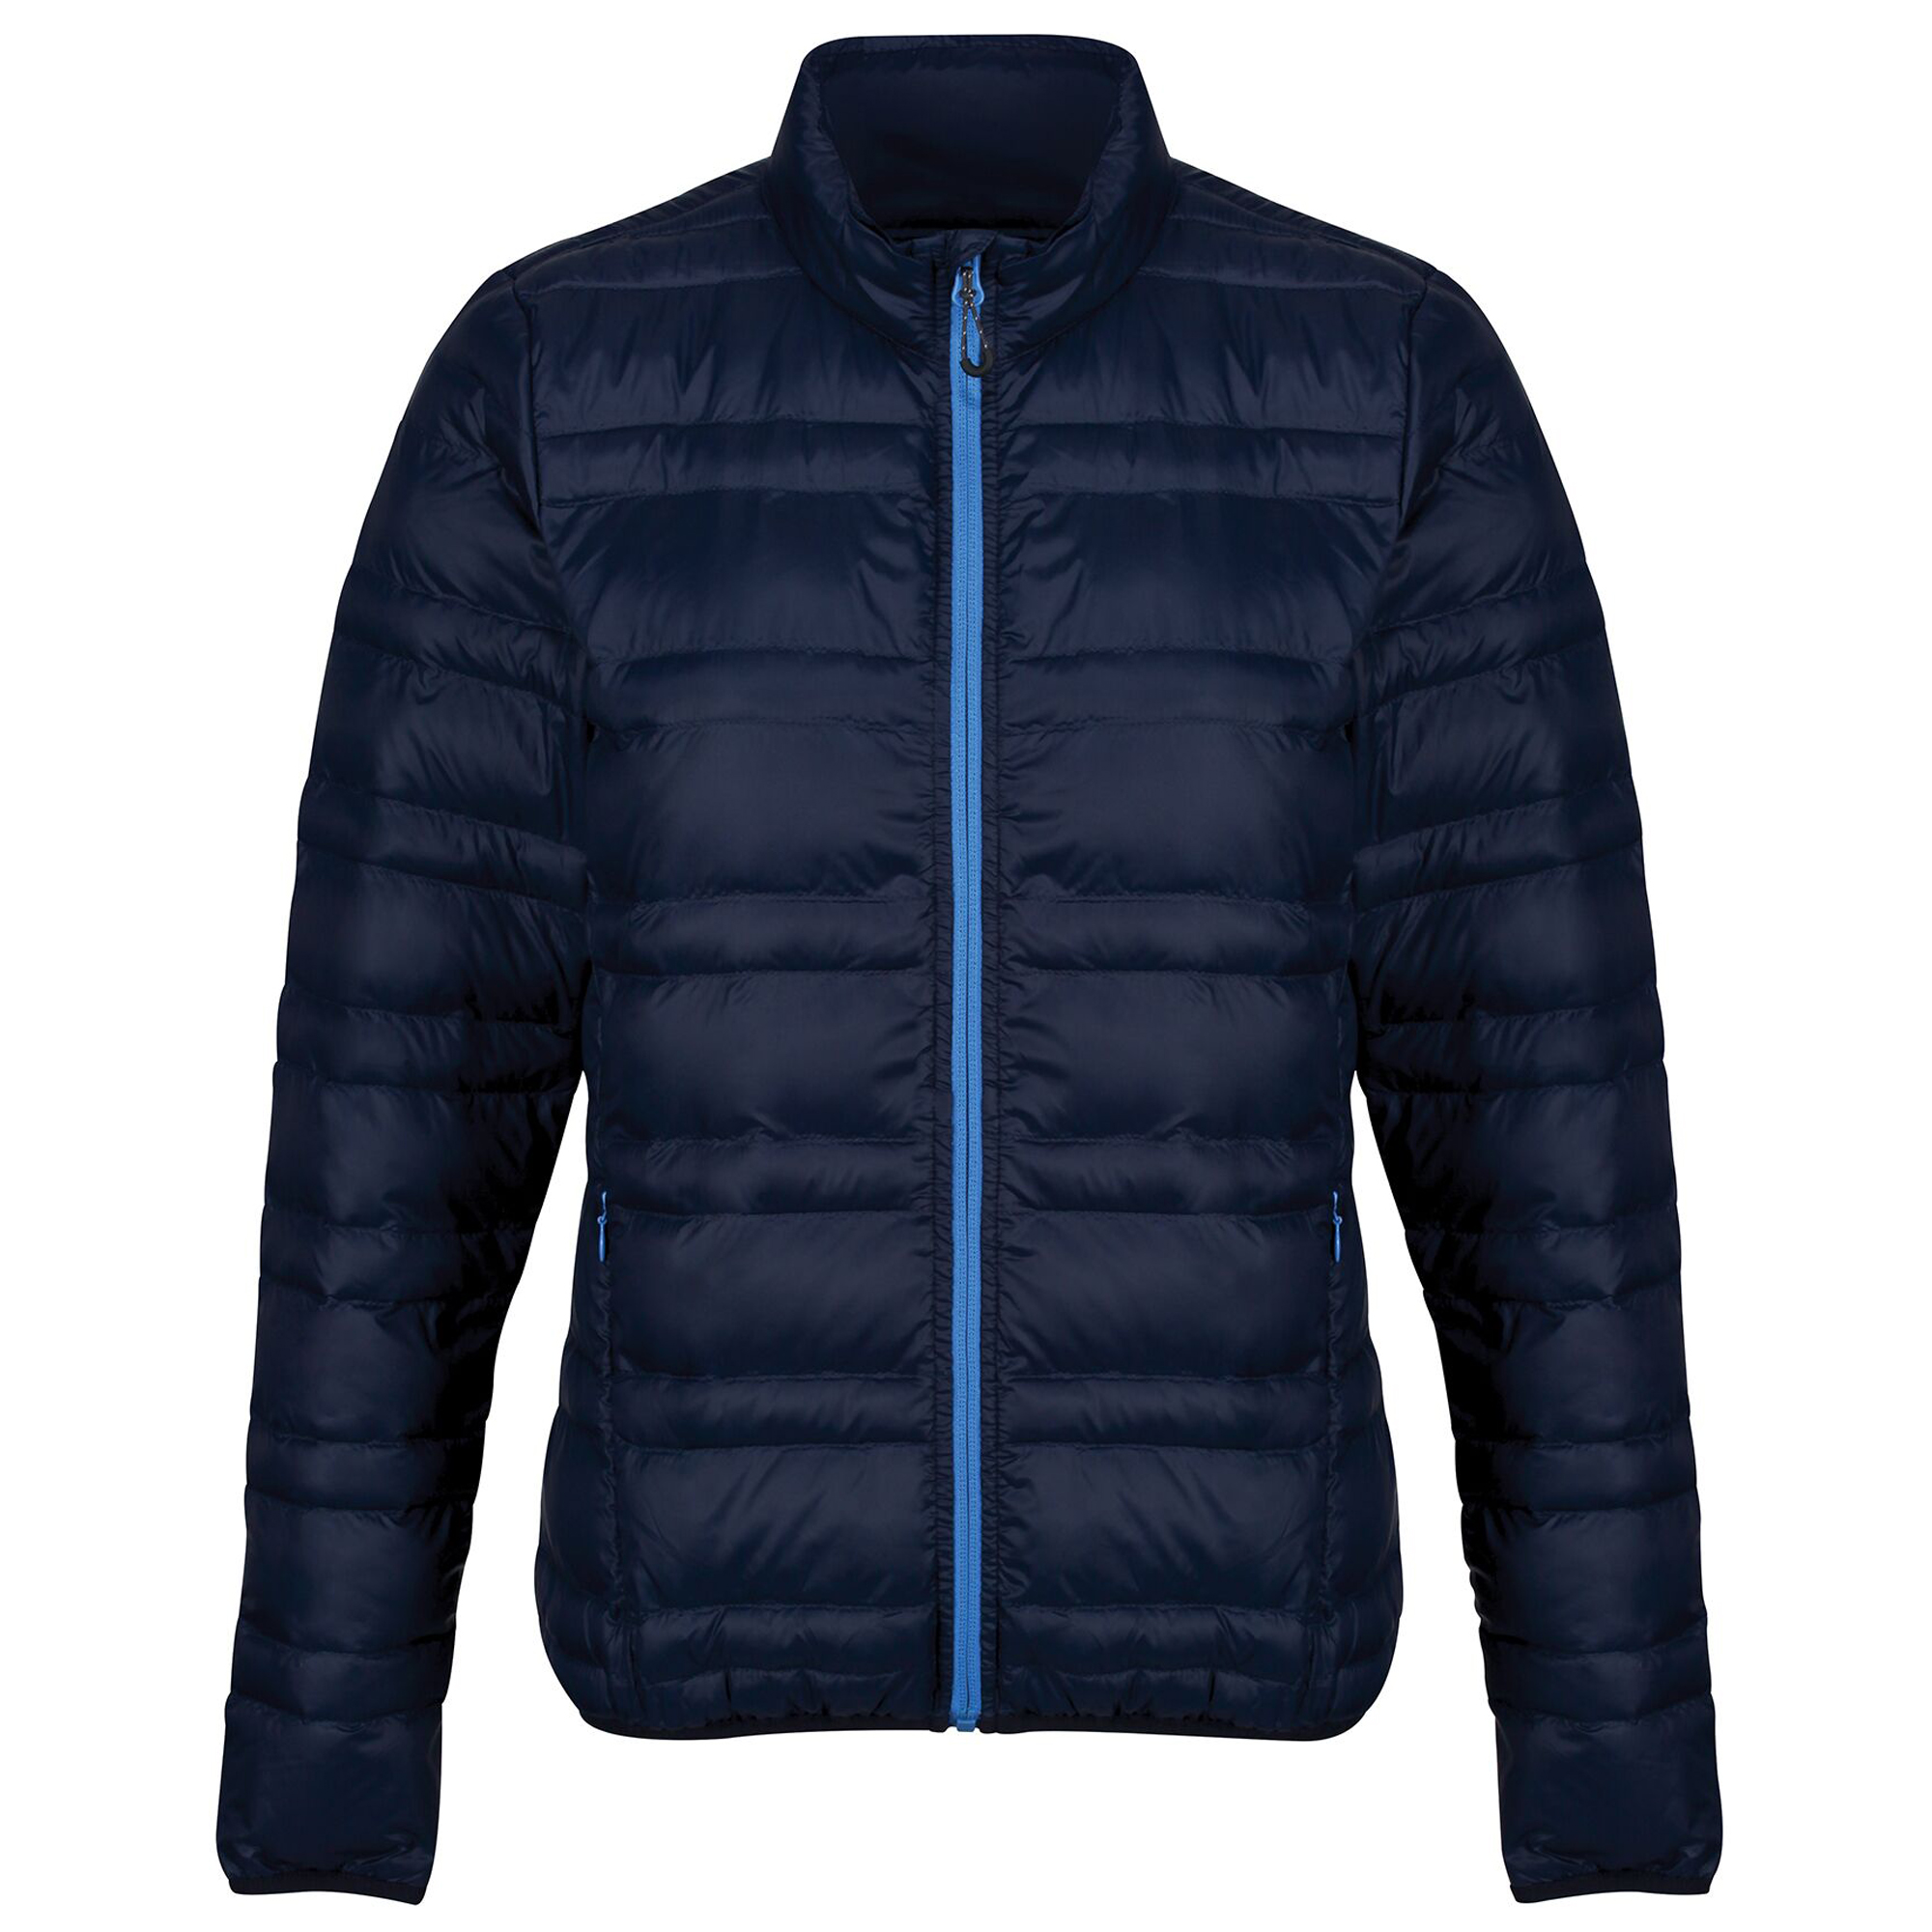 Regatta Womens/Ladies Firedown Baffled Quilted Jacket (16 UK) (Navy/French Blue)